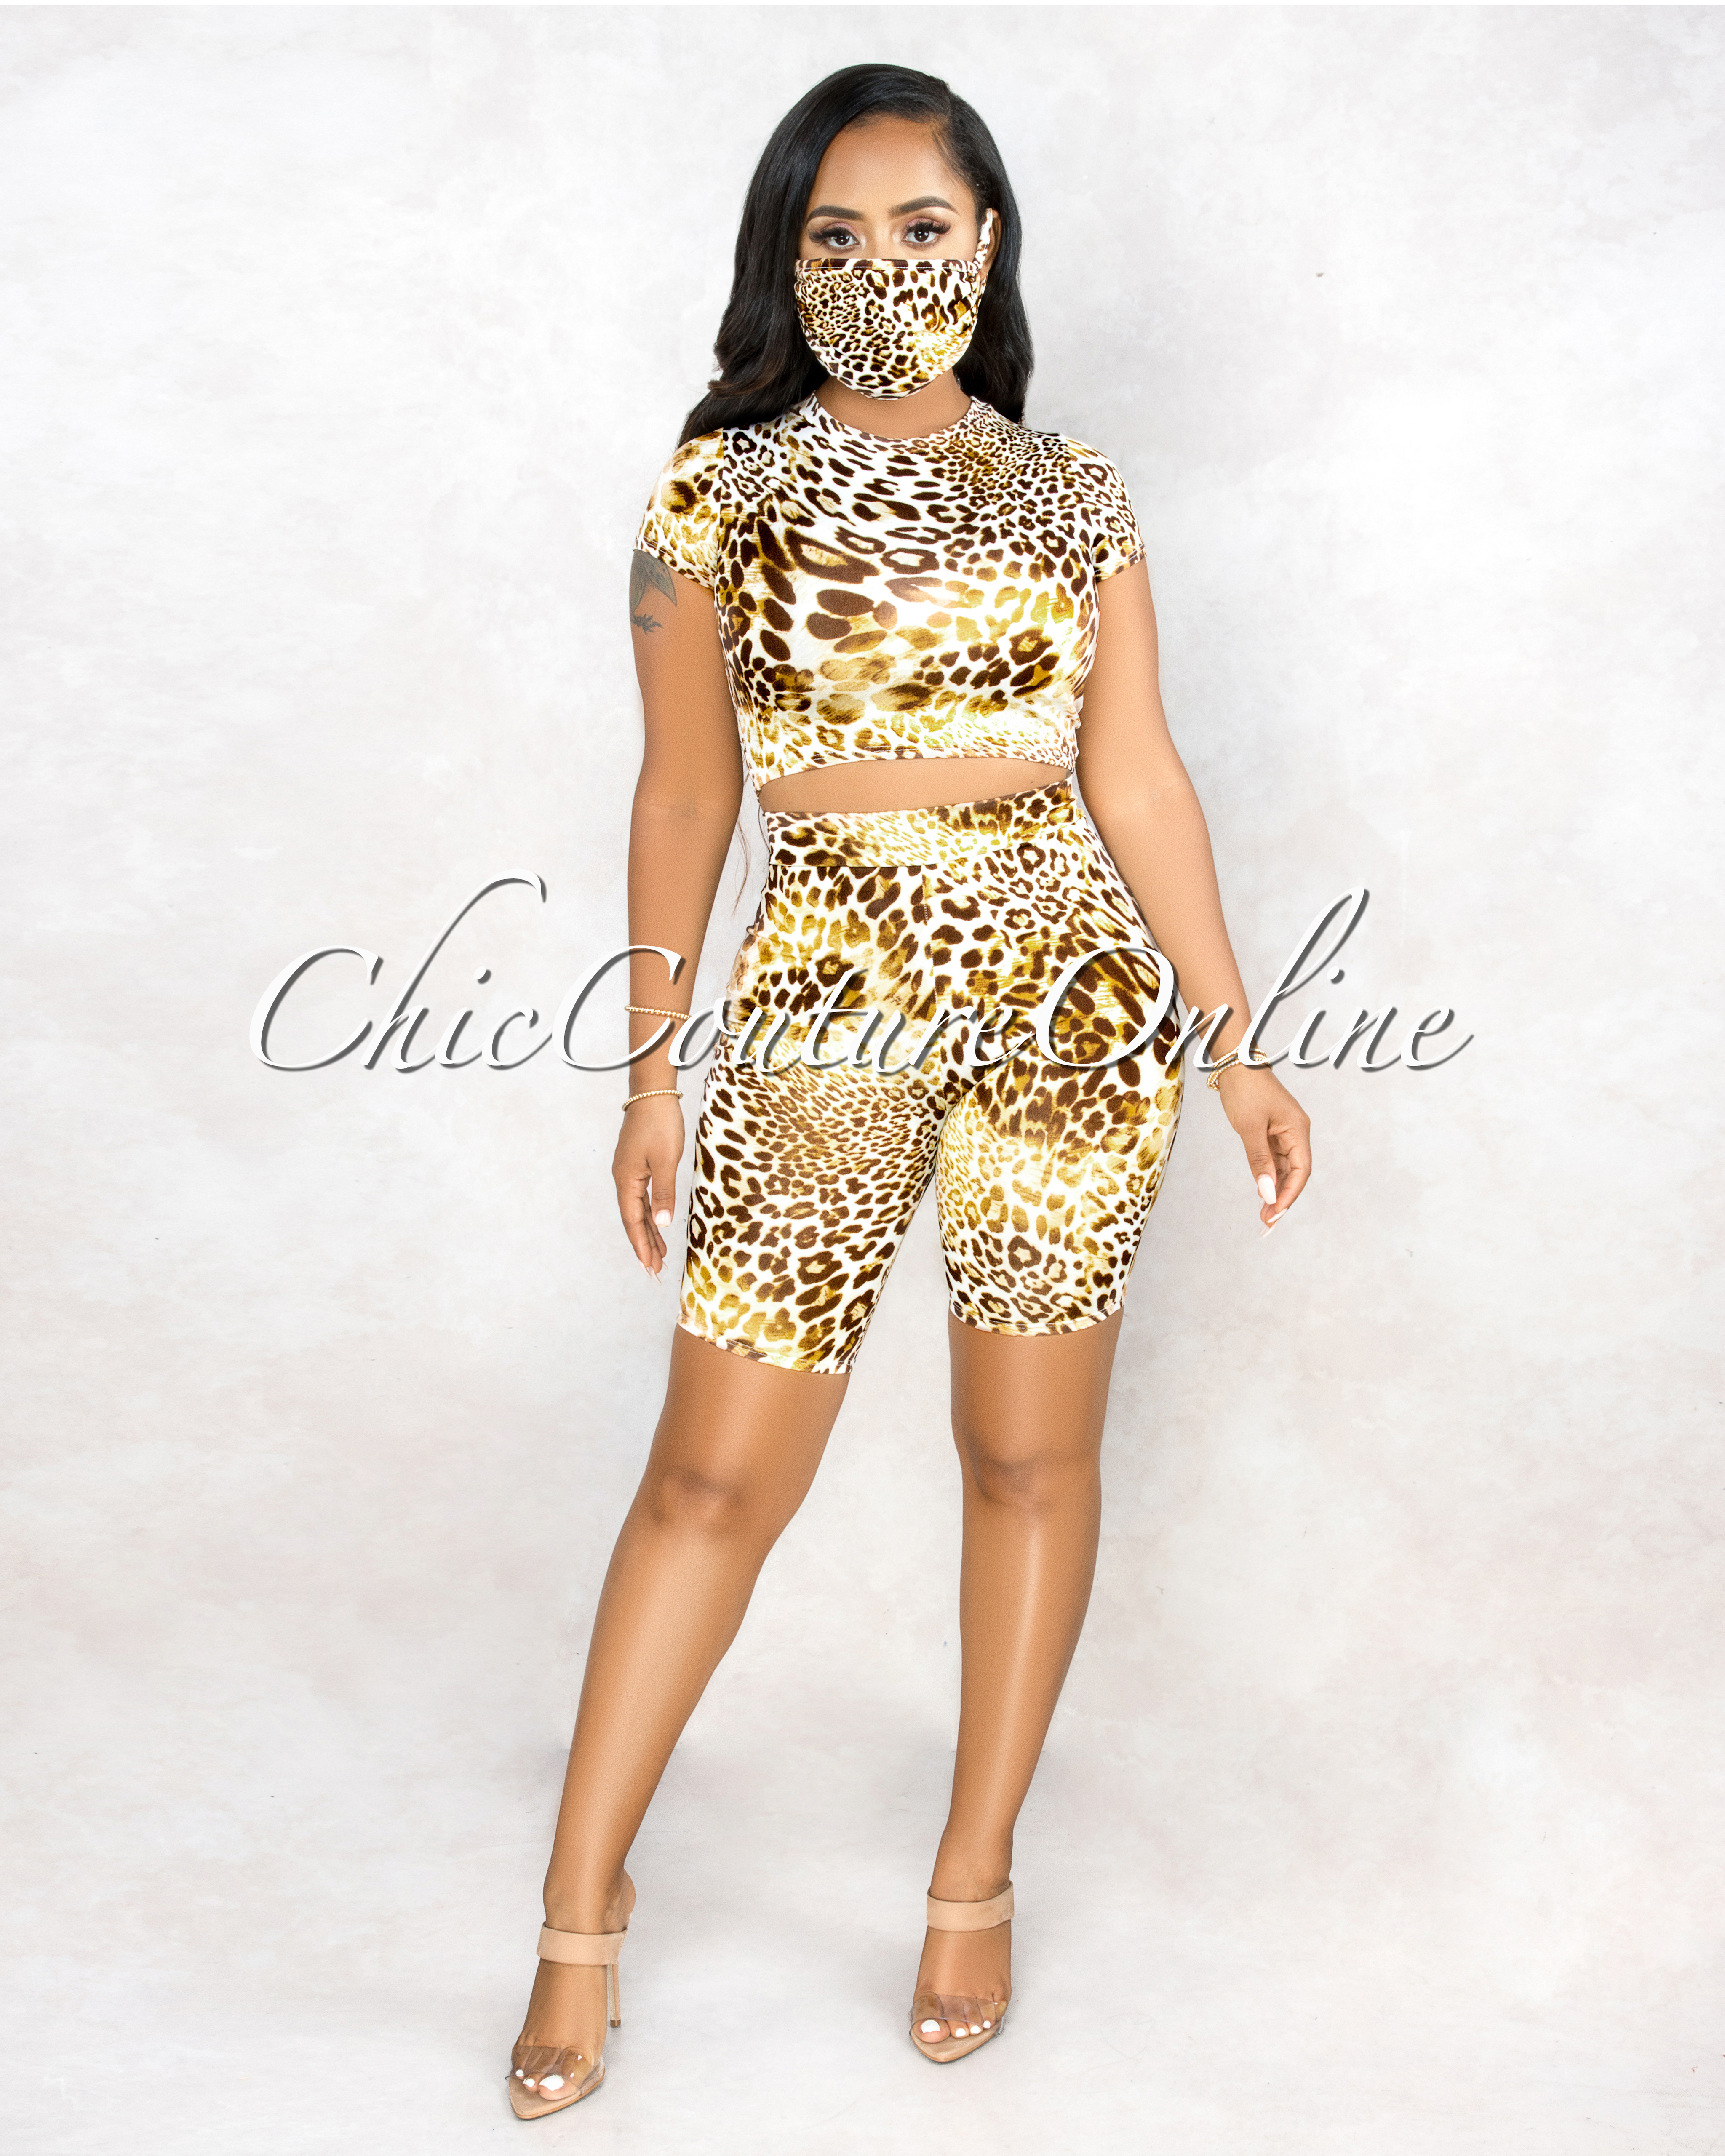 Fitch Leopard Print Tie-Dye Matching Mask Three Piece Set